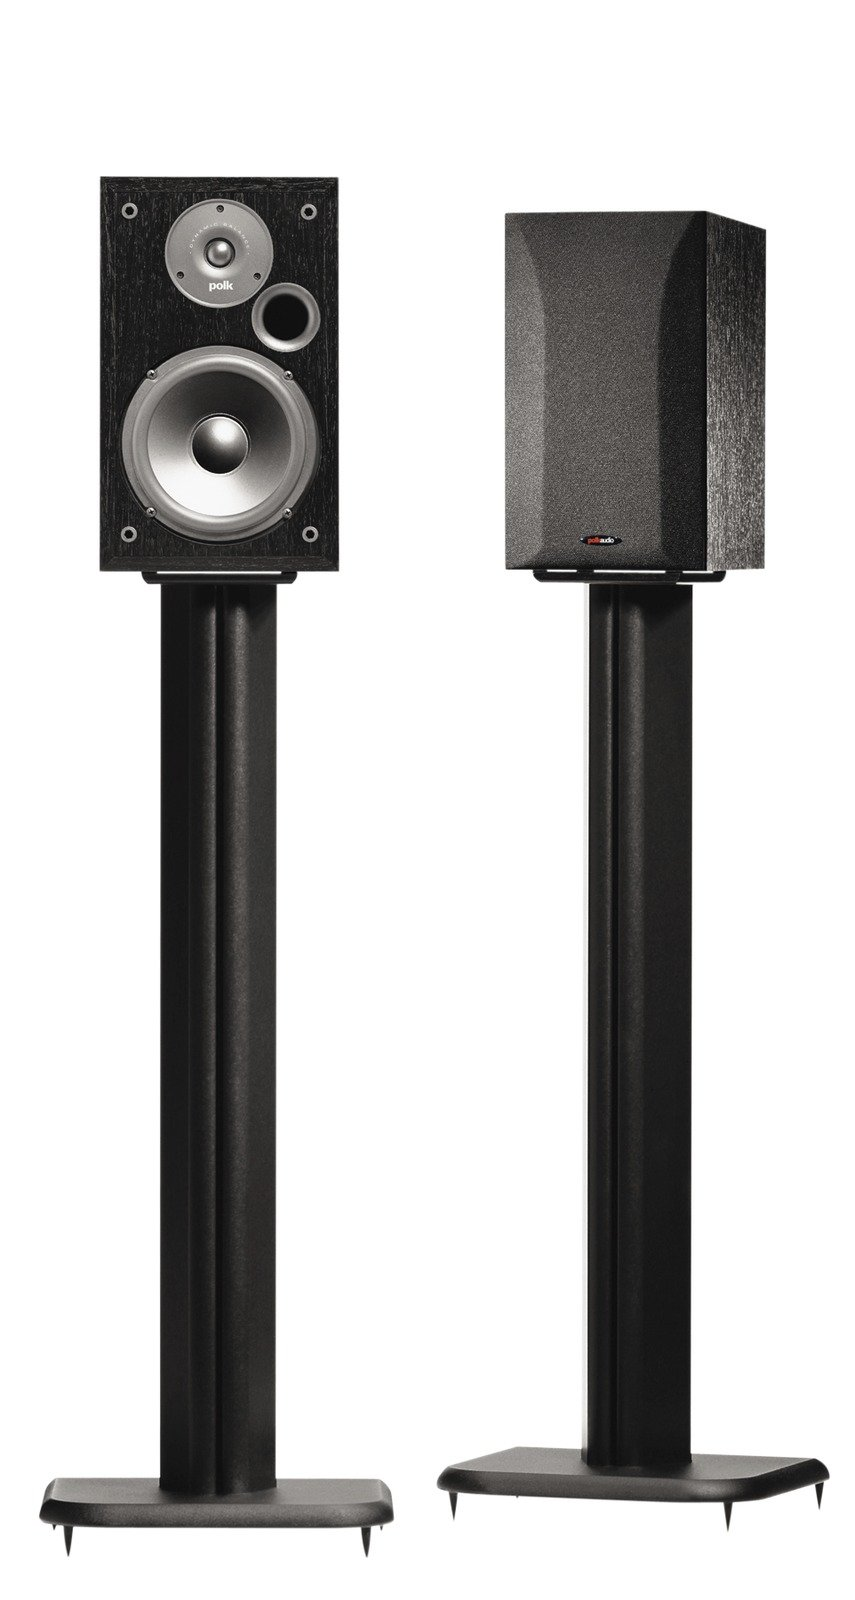 cheap bookshelf speaker stands, find bookshelf speaker stands deals